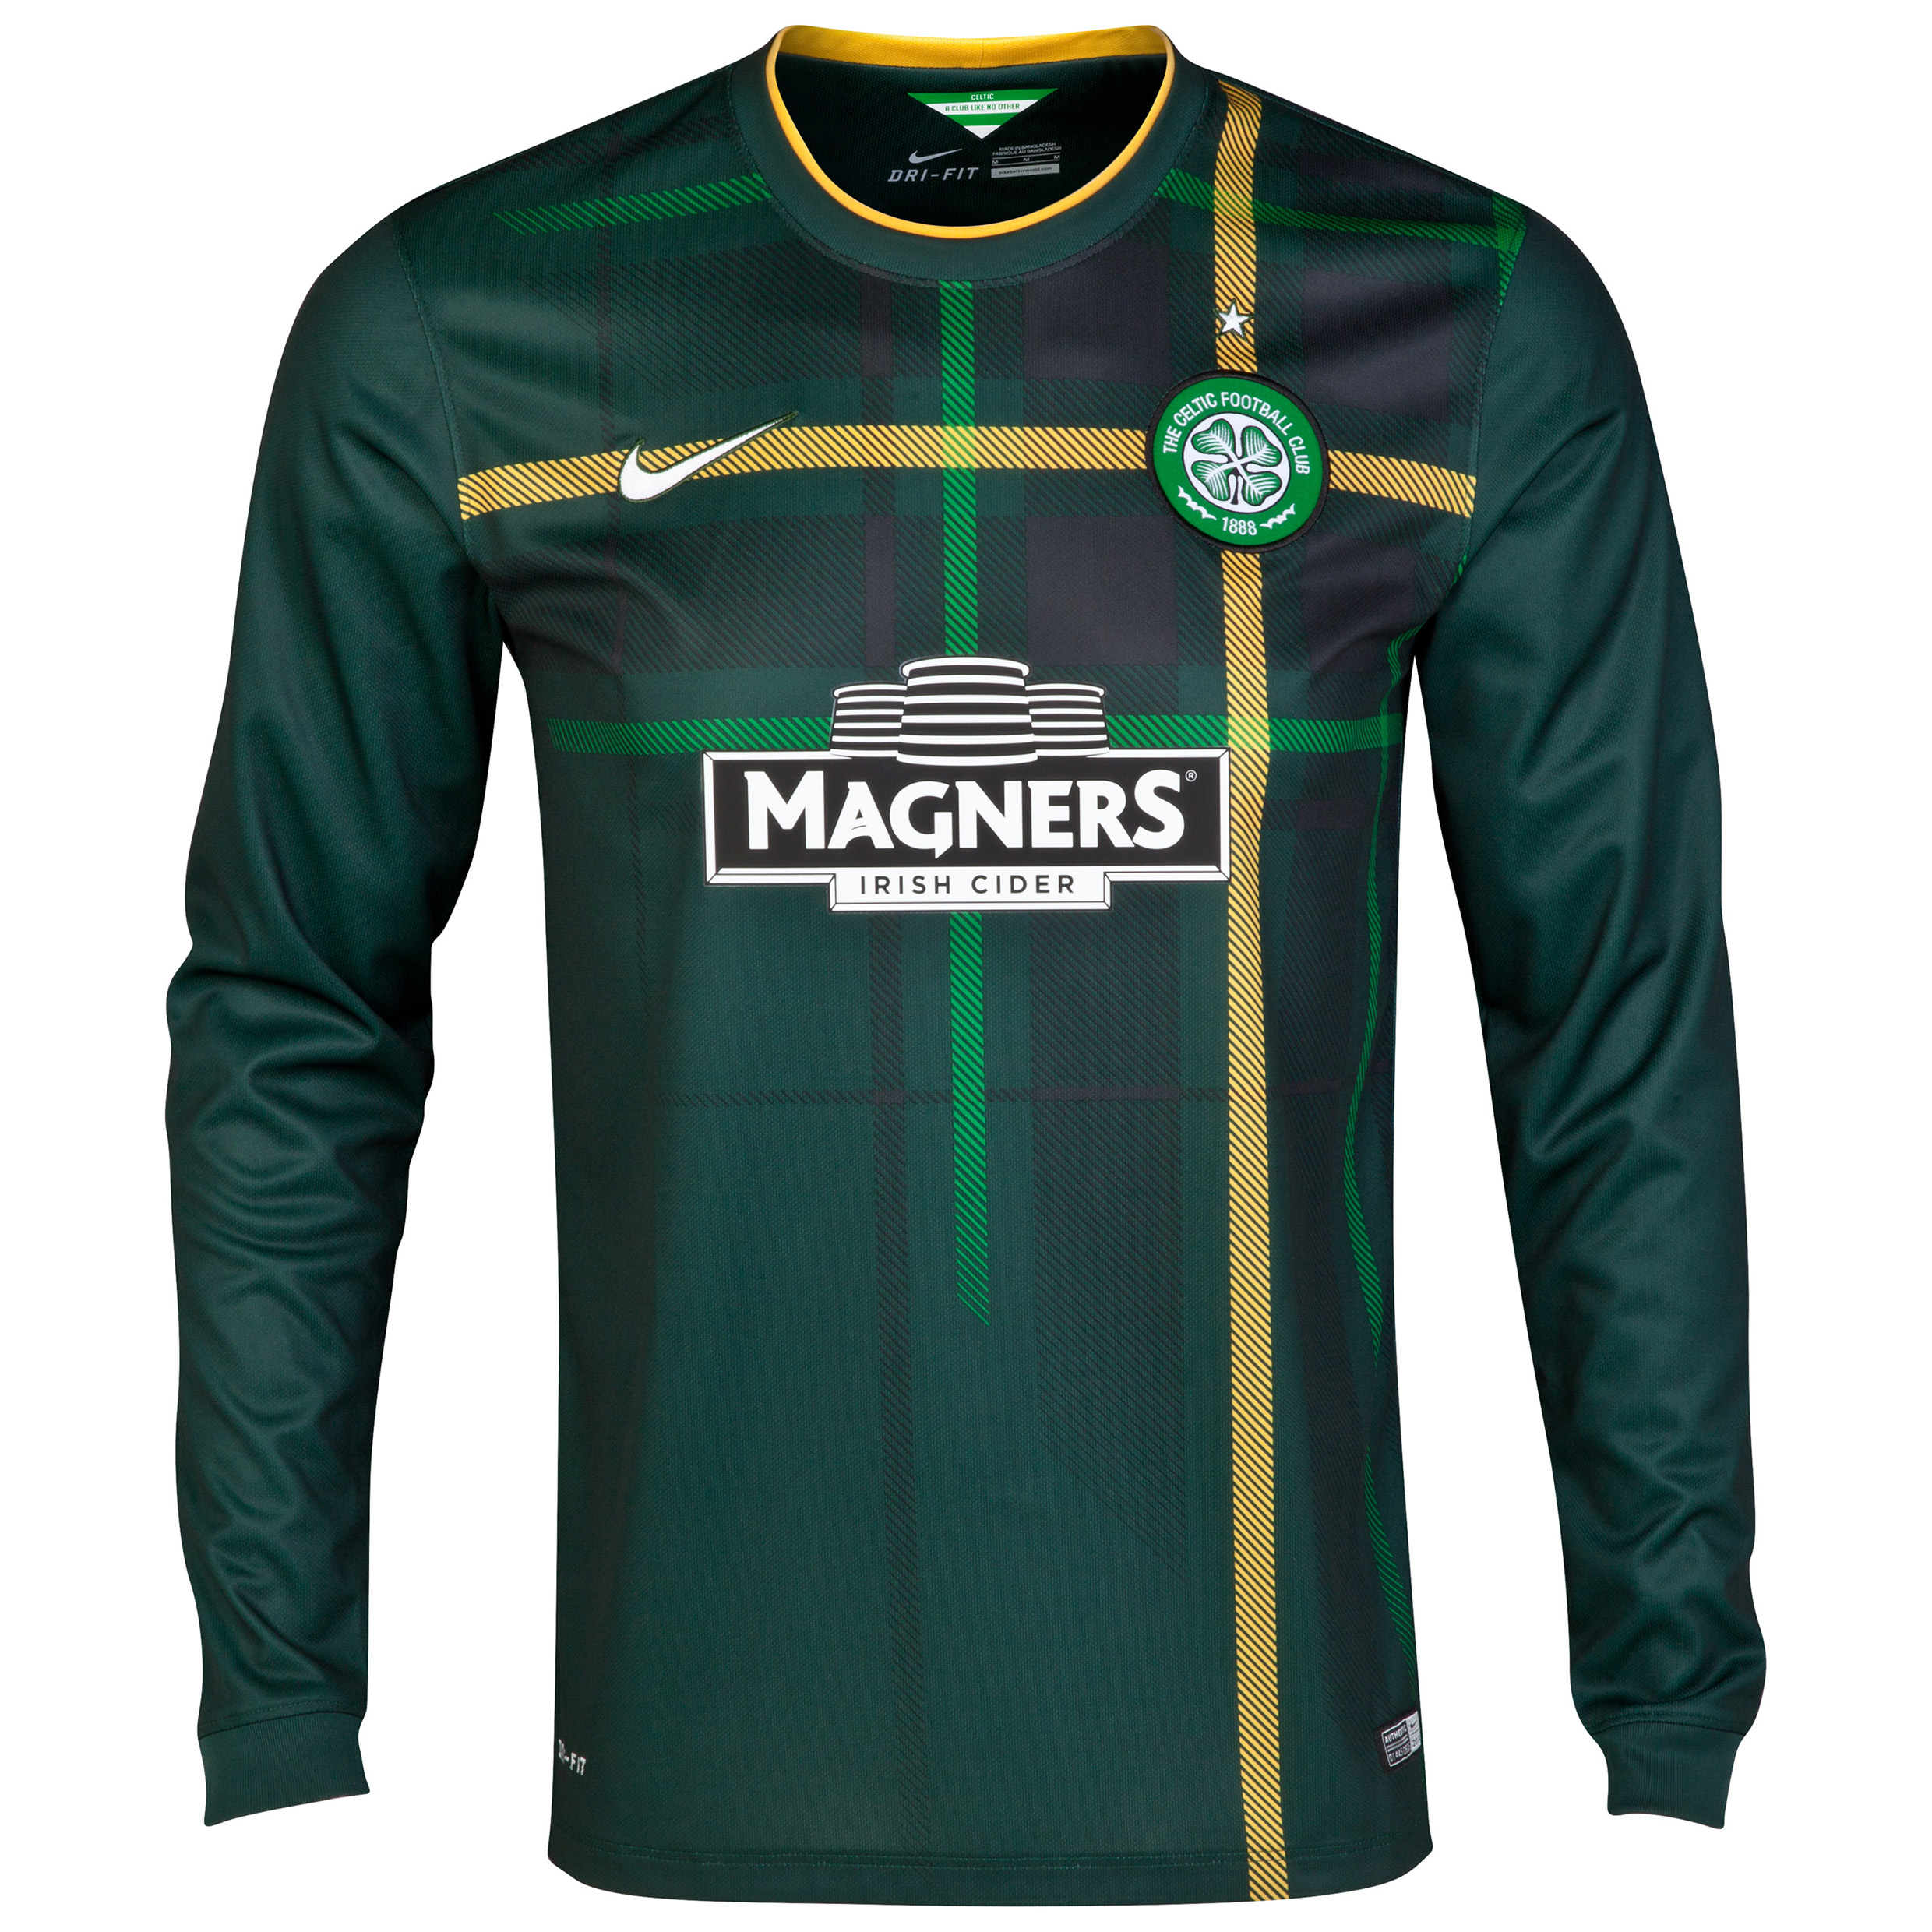 Celtic Away Shirt 2014/15 - Long Sleeved - With Sponsor Green